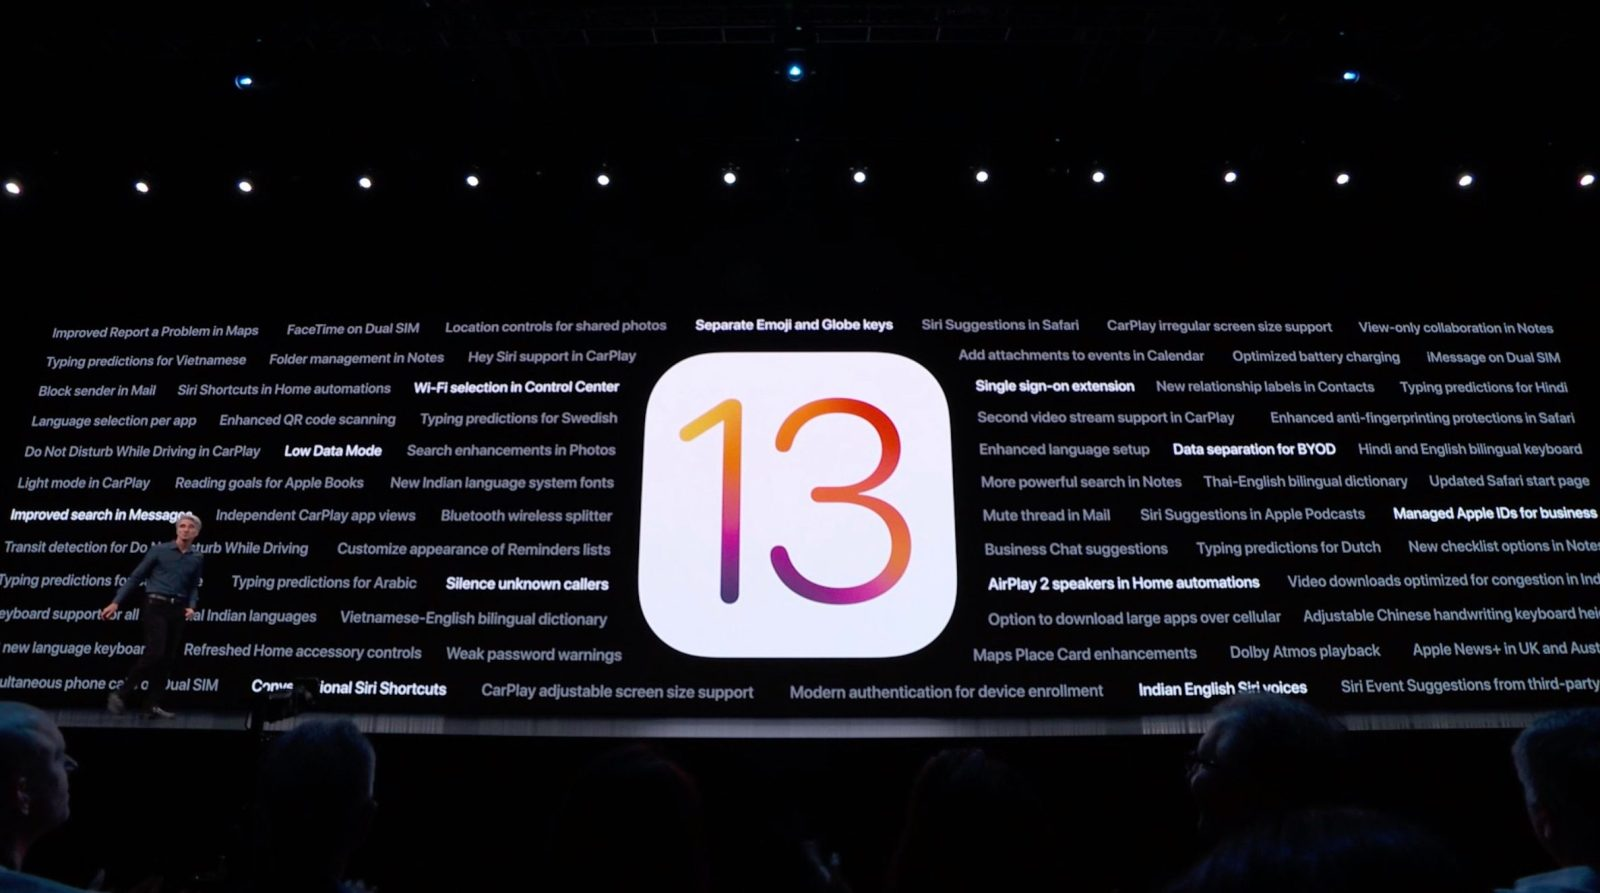 StarBoard: New Apple Glasses details emerge in iOS 13 code